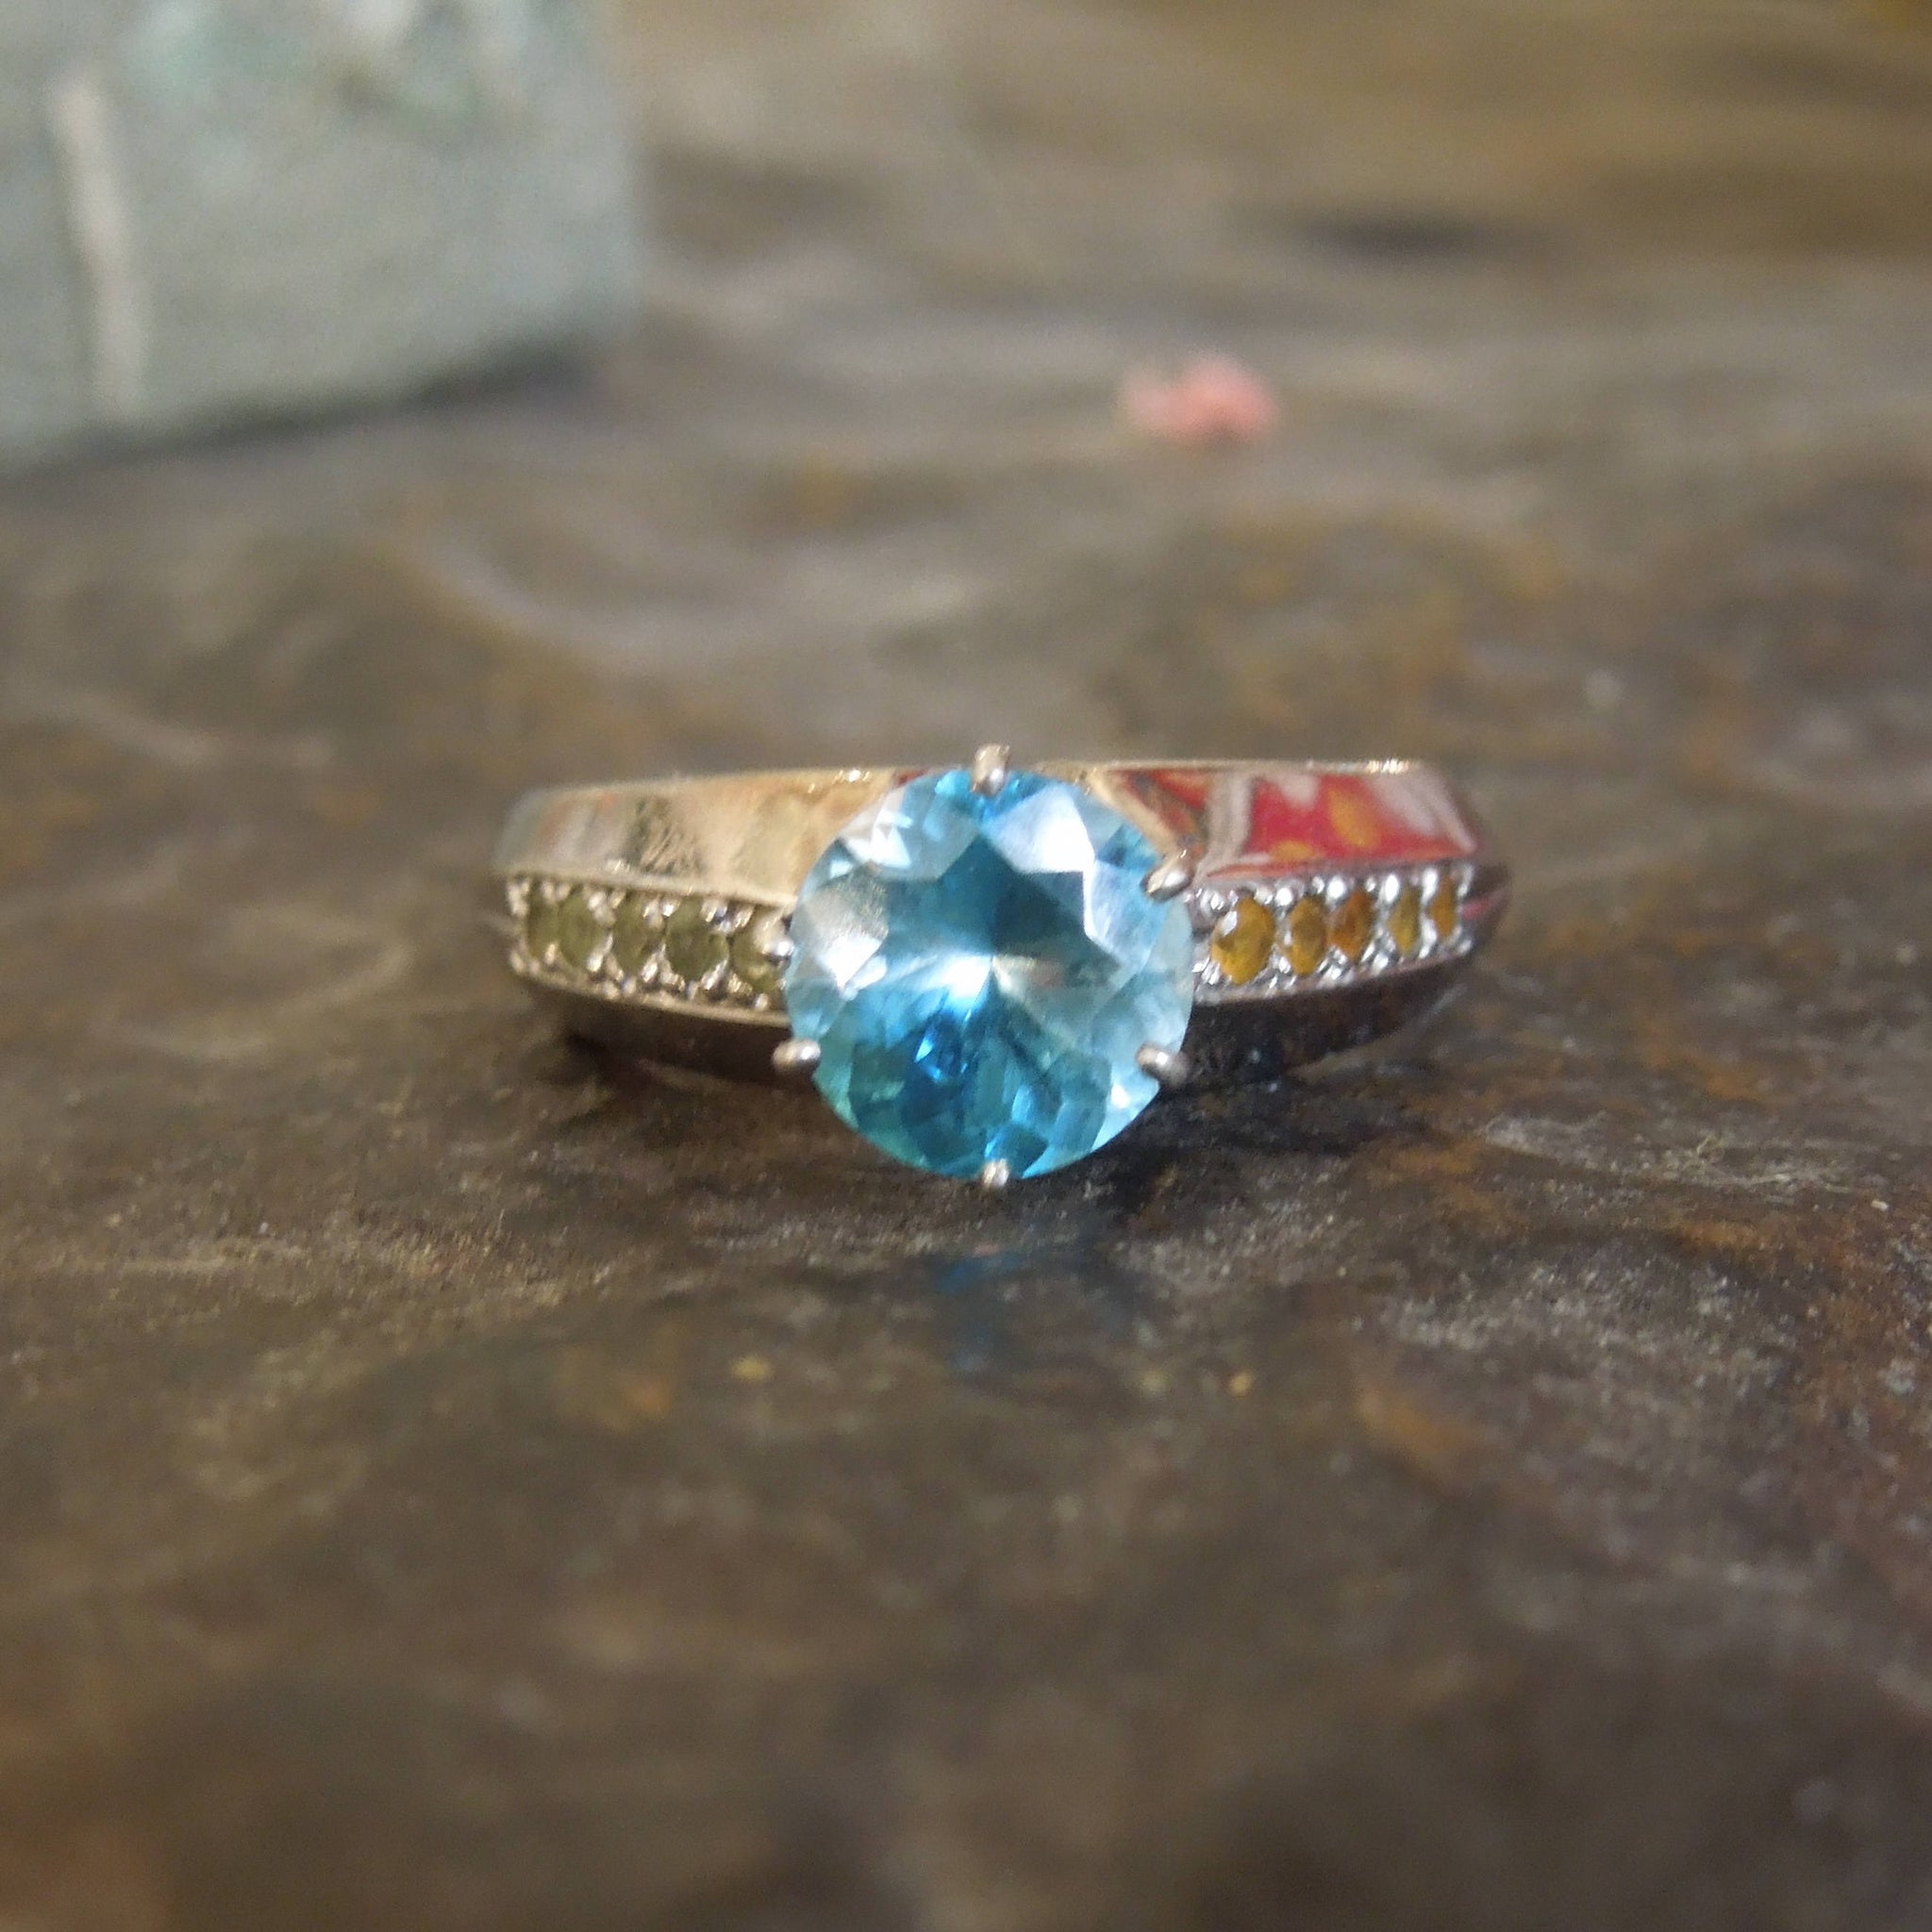 1.83 carat Blue Zircon and Multicolor Garnet in 14K White Gold Mounting